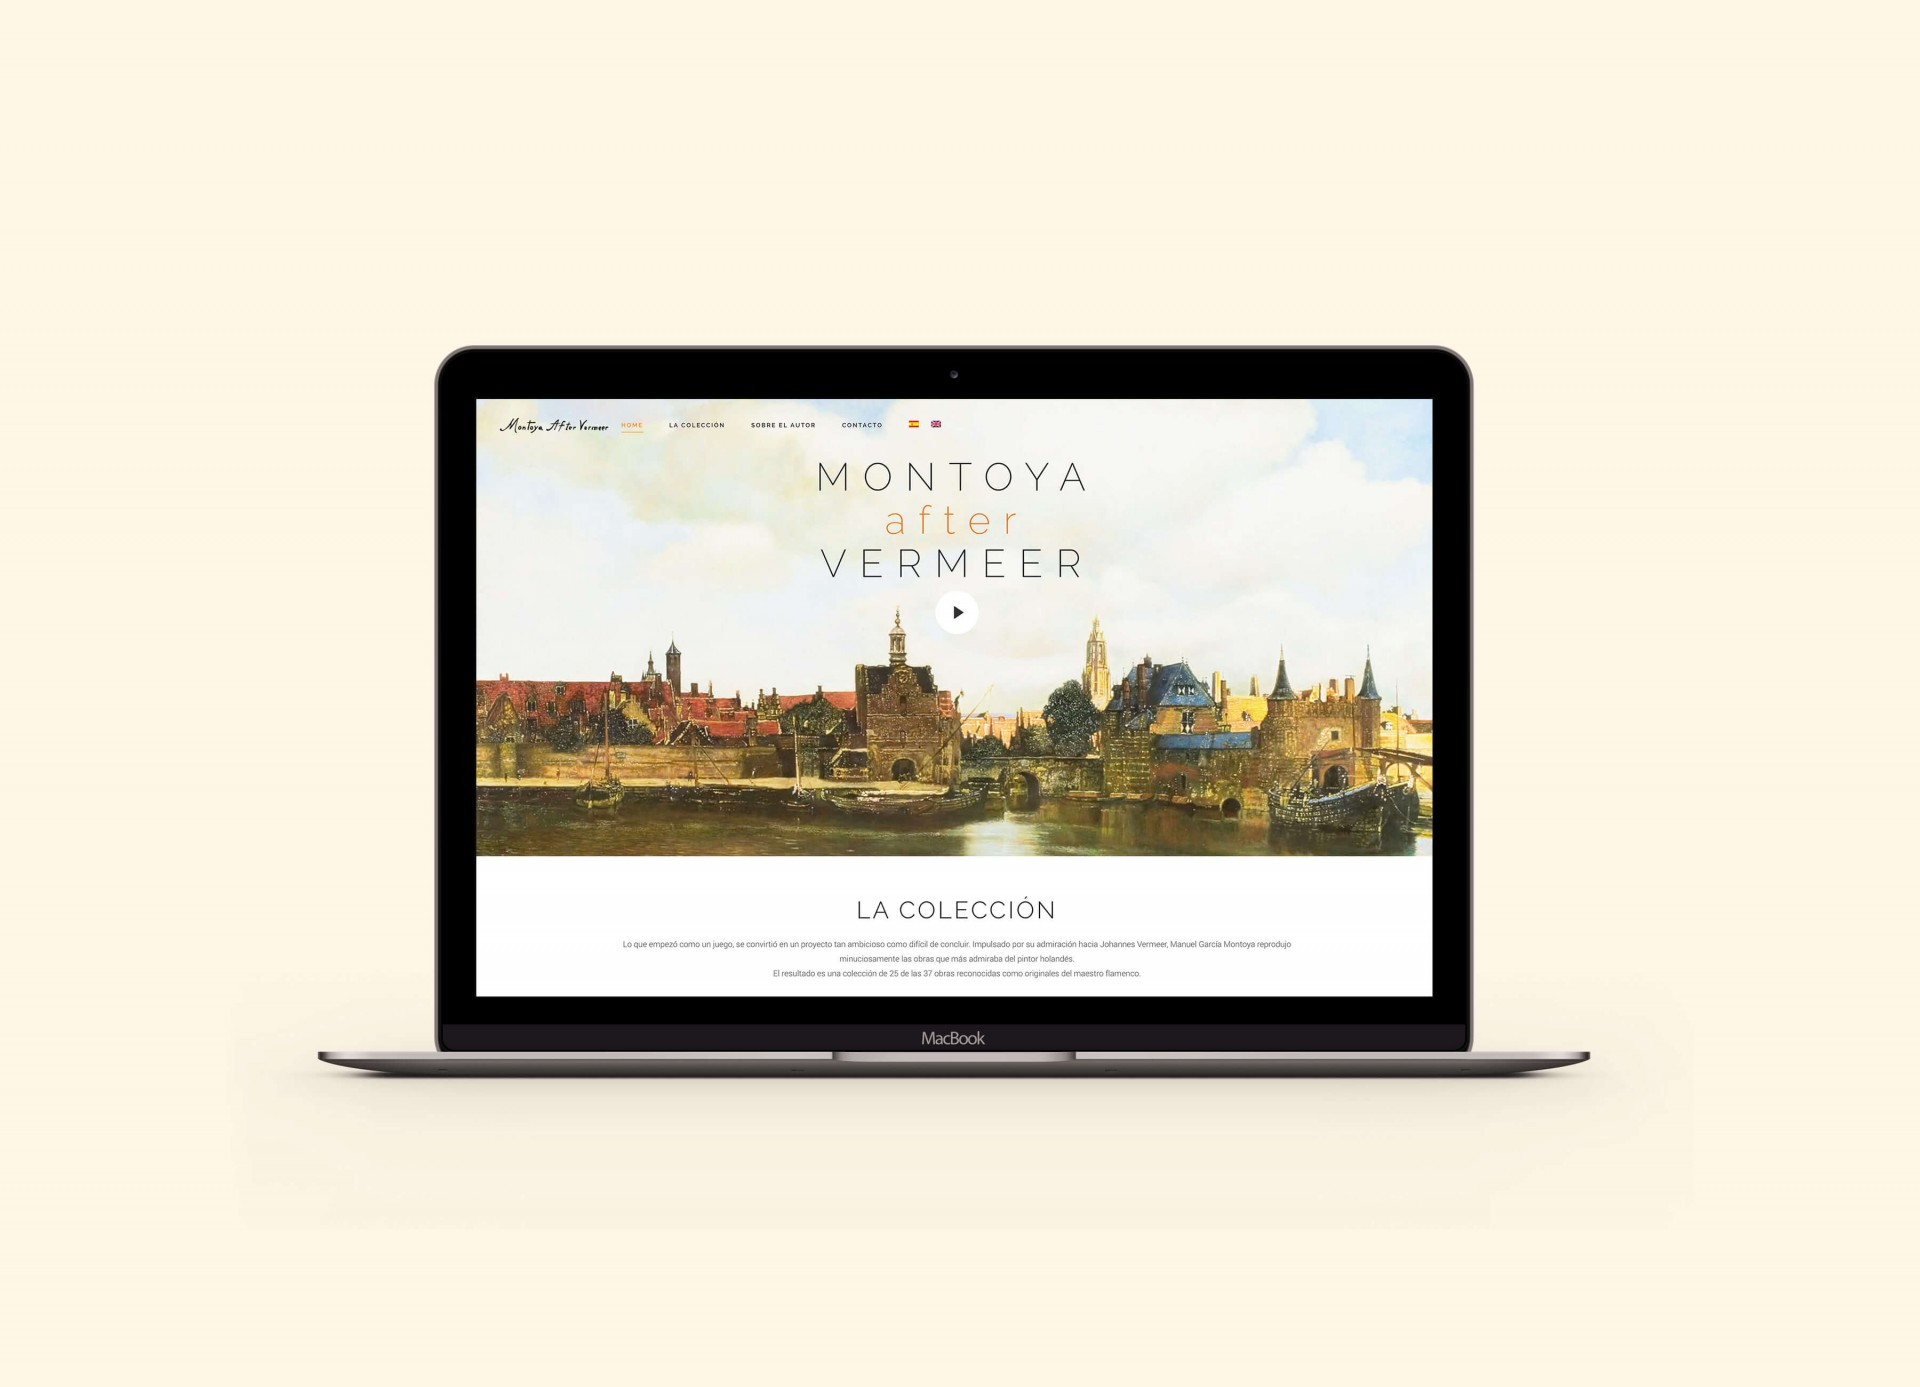 campana-de-comunicacion-montoya-after-vermeer-pagina-web-home-laptop